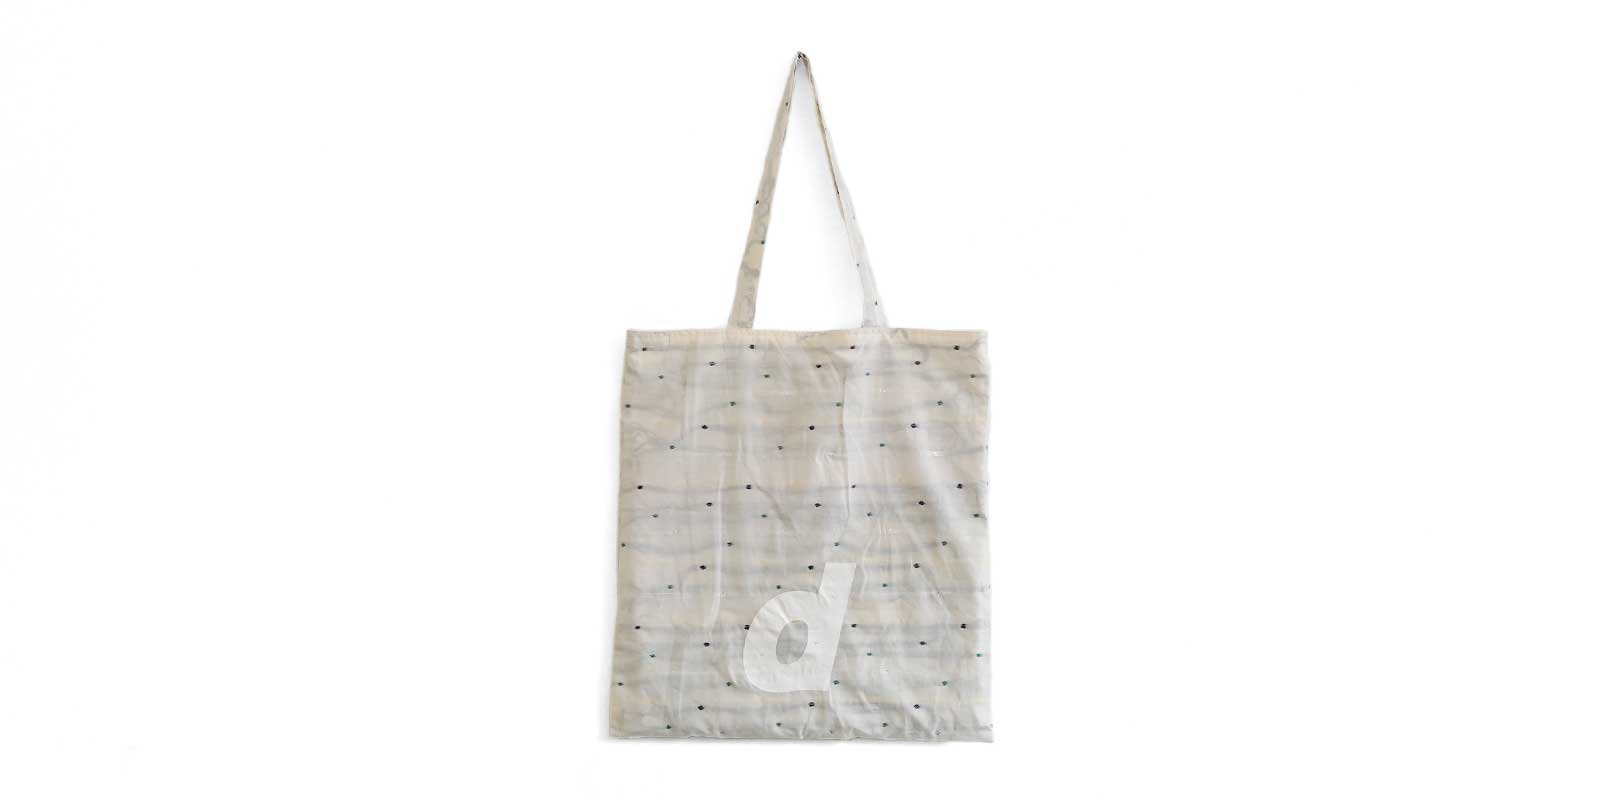 BAG FROM LIFESTOCK・TOTE・009・山梨